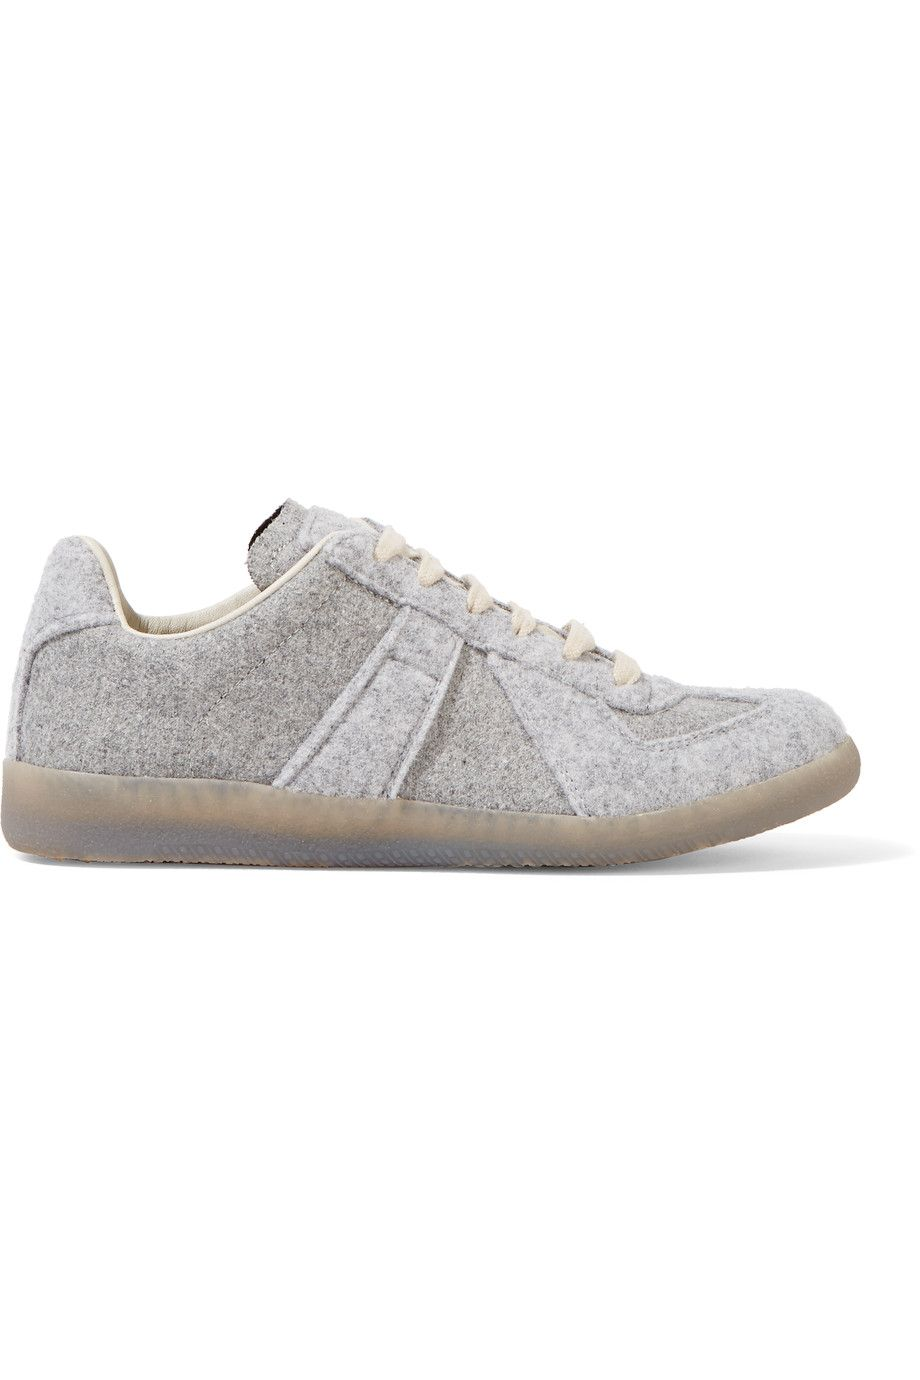 Maison Margiela Replica Felted Sneakers